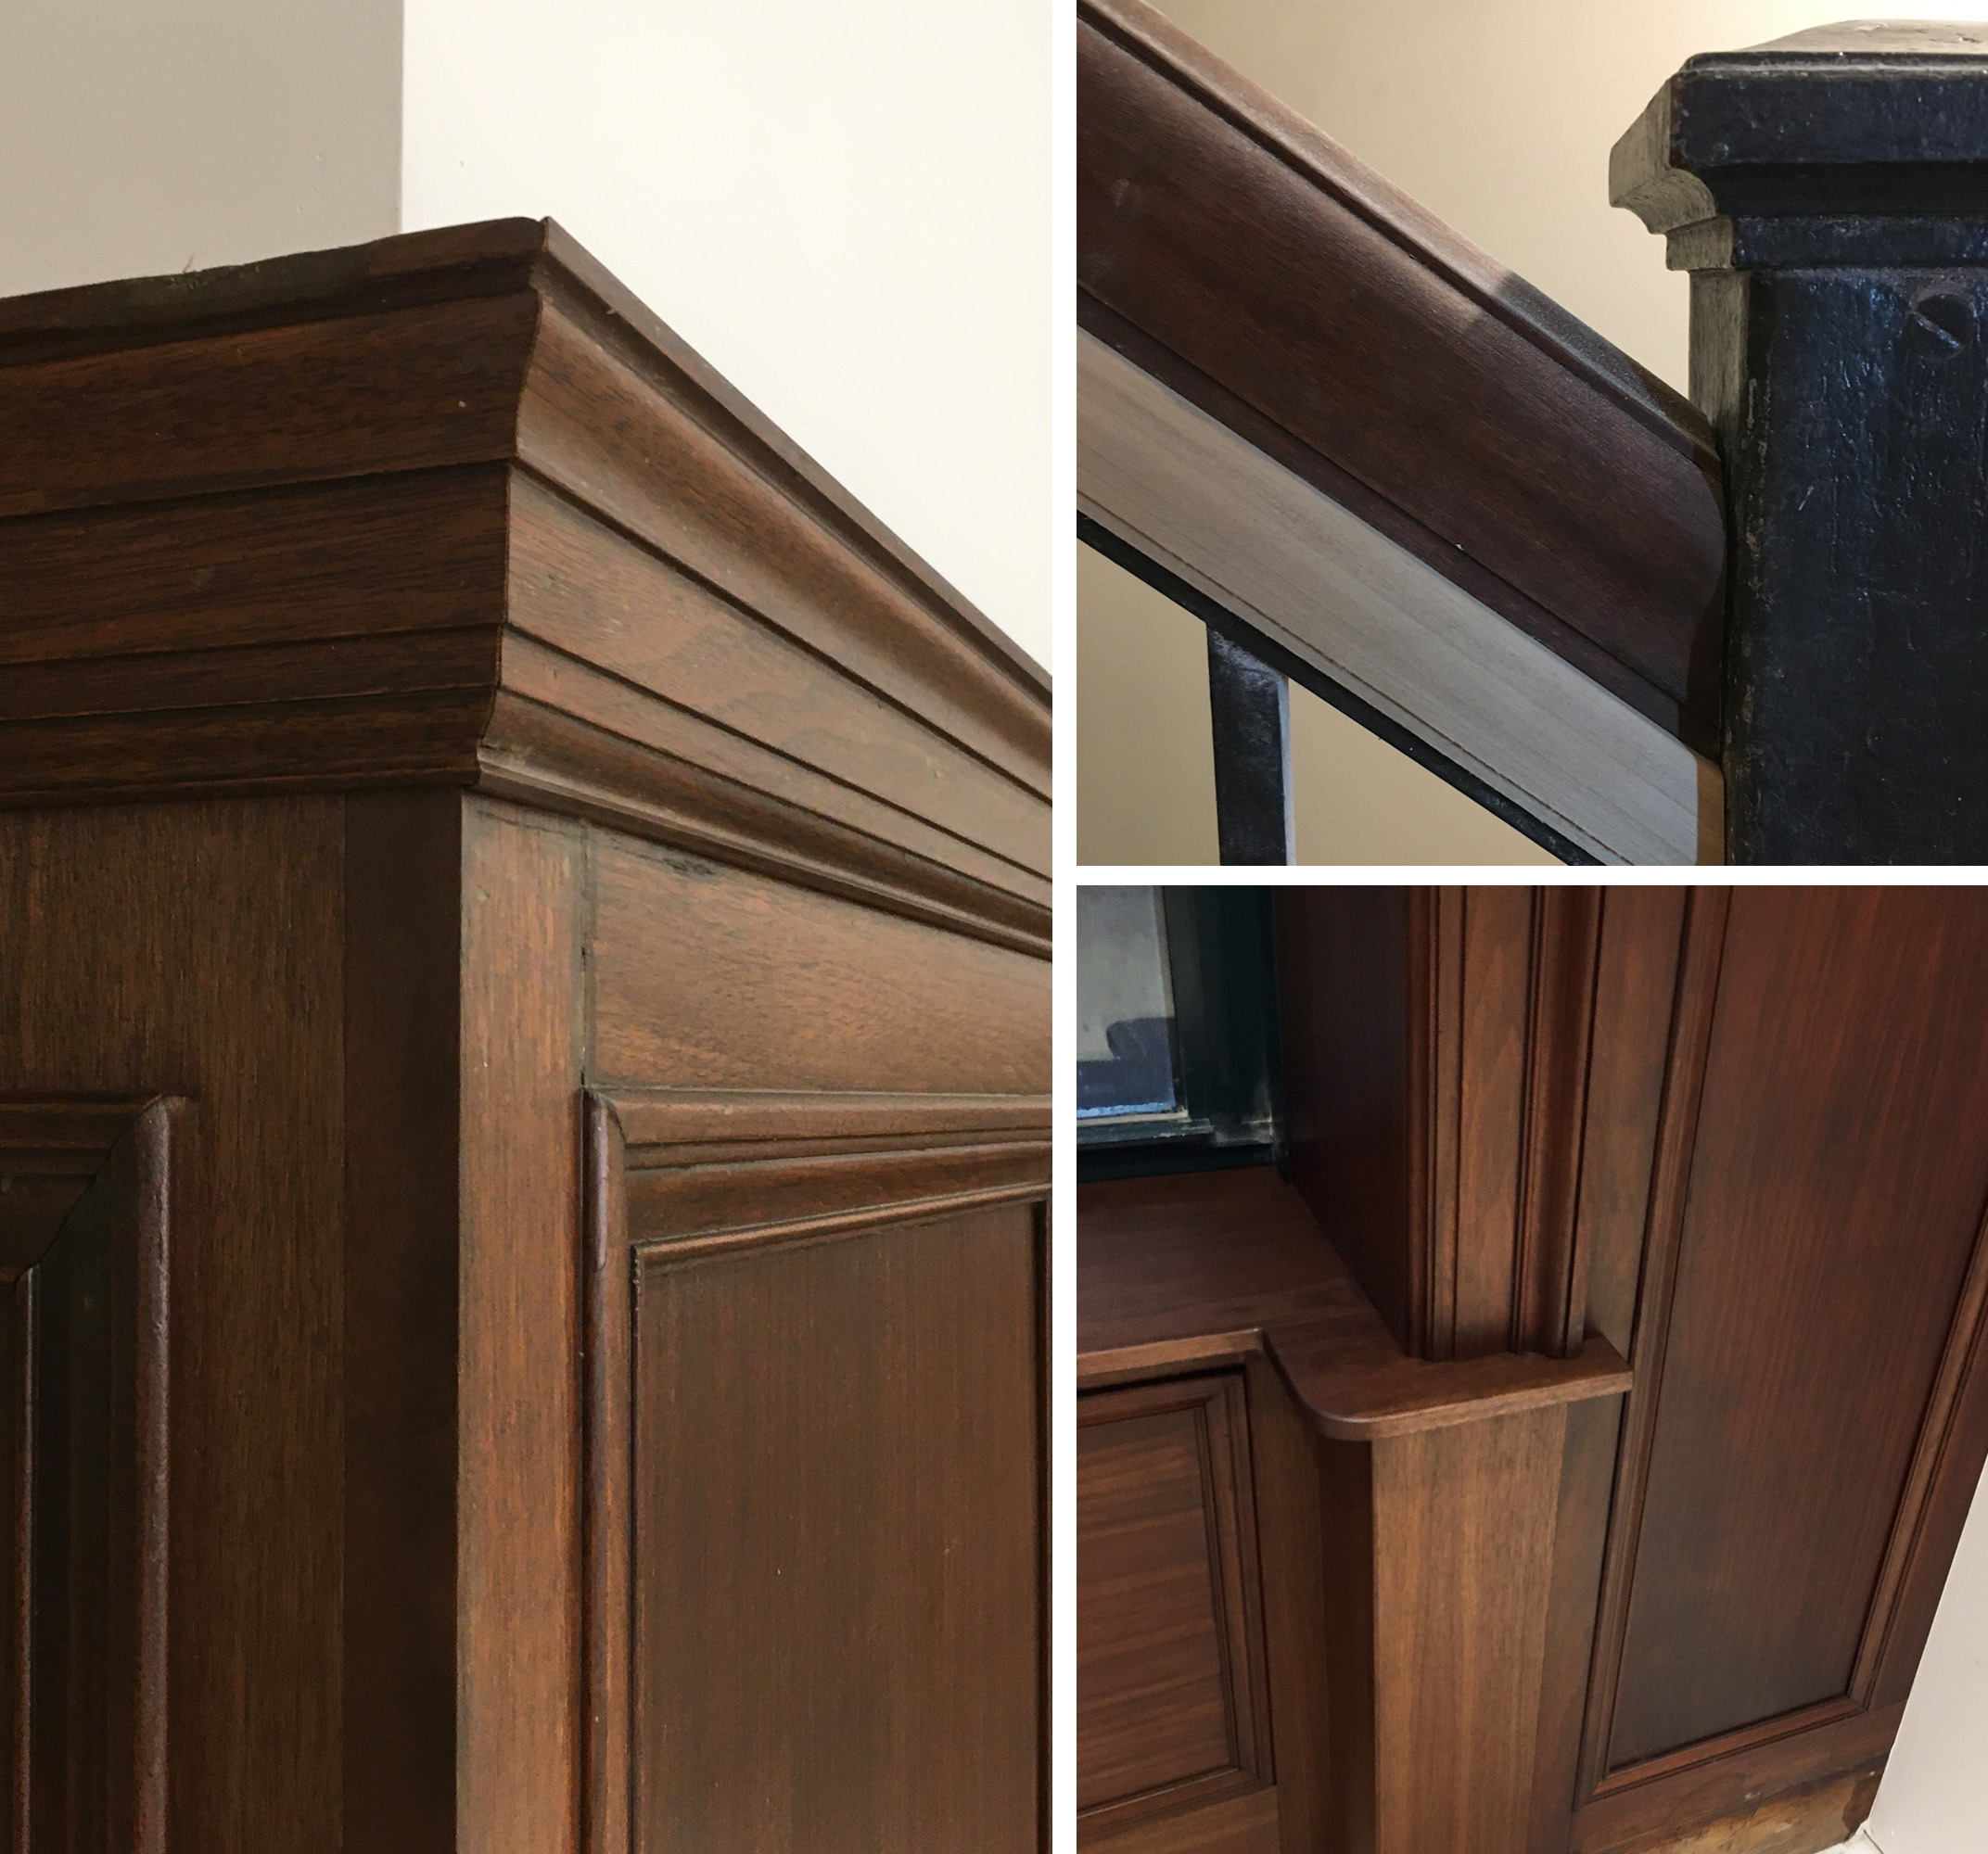 Woodwork and railings in the renovated Hilton Garden Inn, downtown Flint